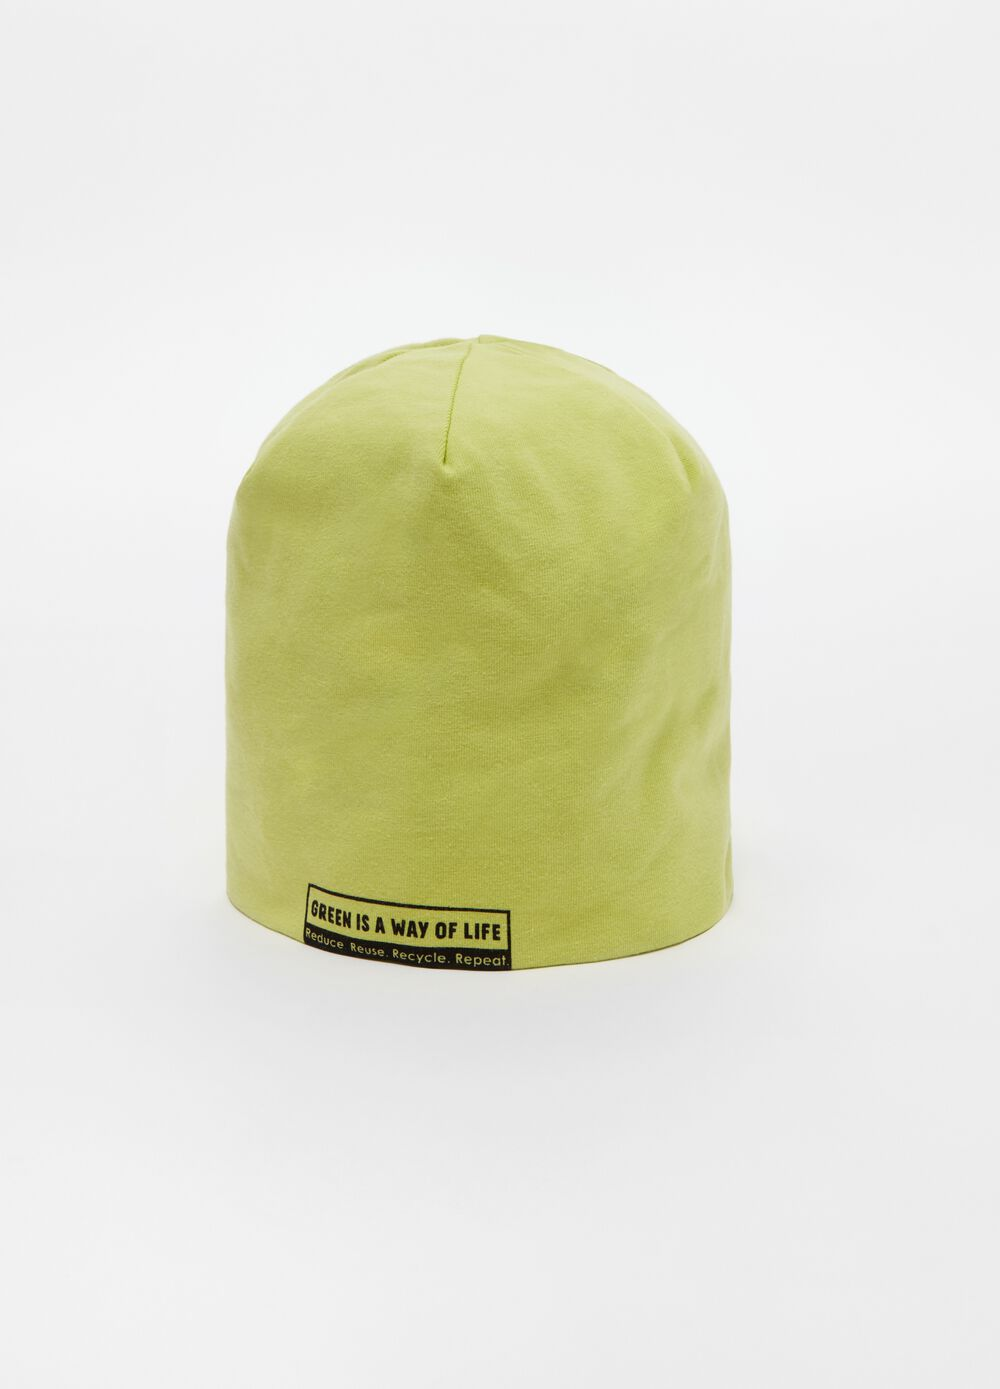 Soft cap with lettering print